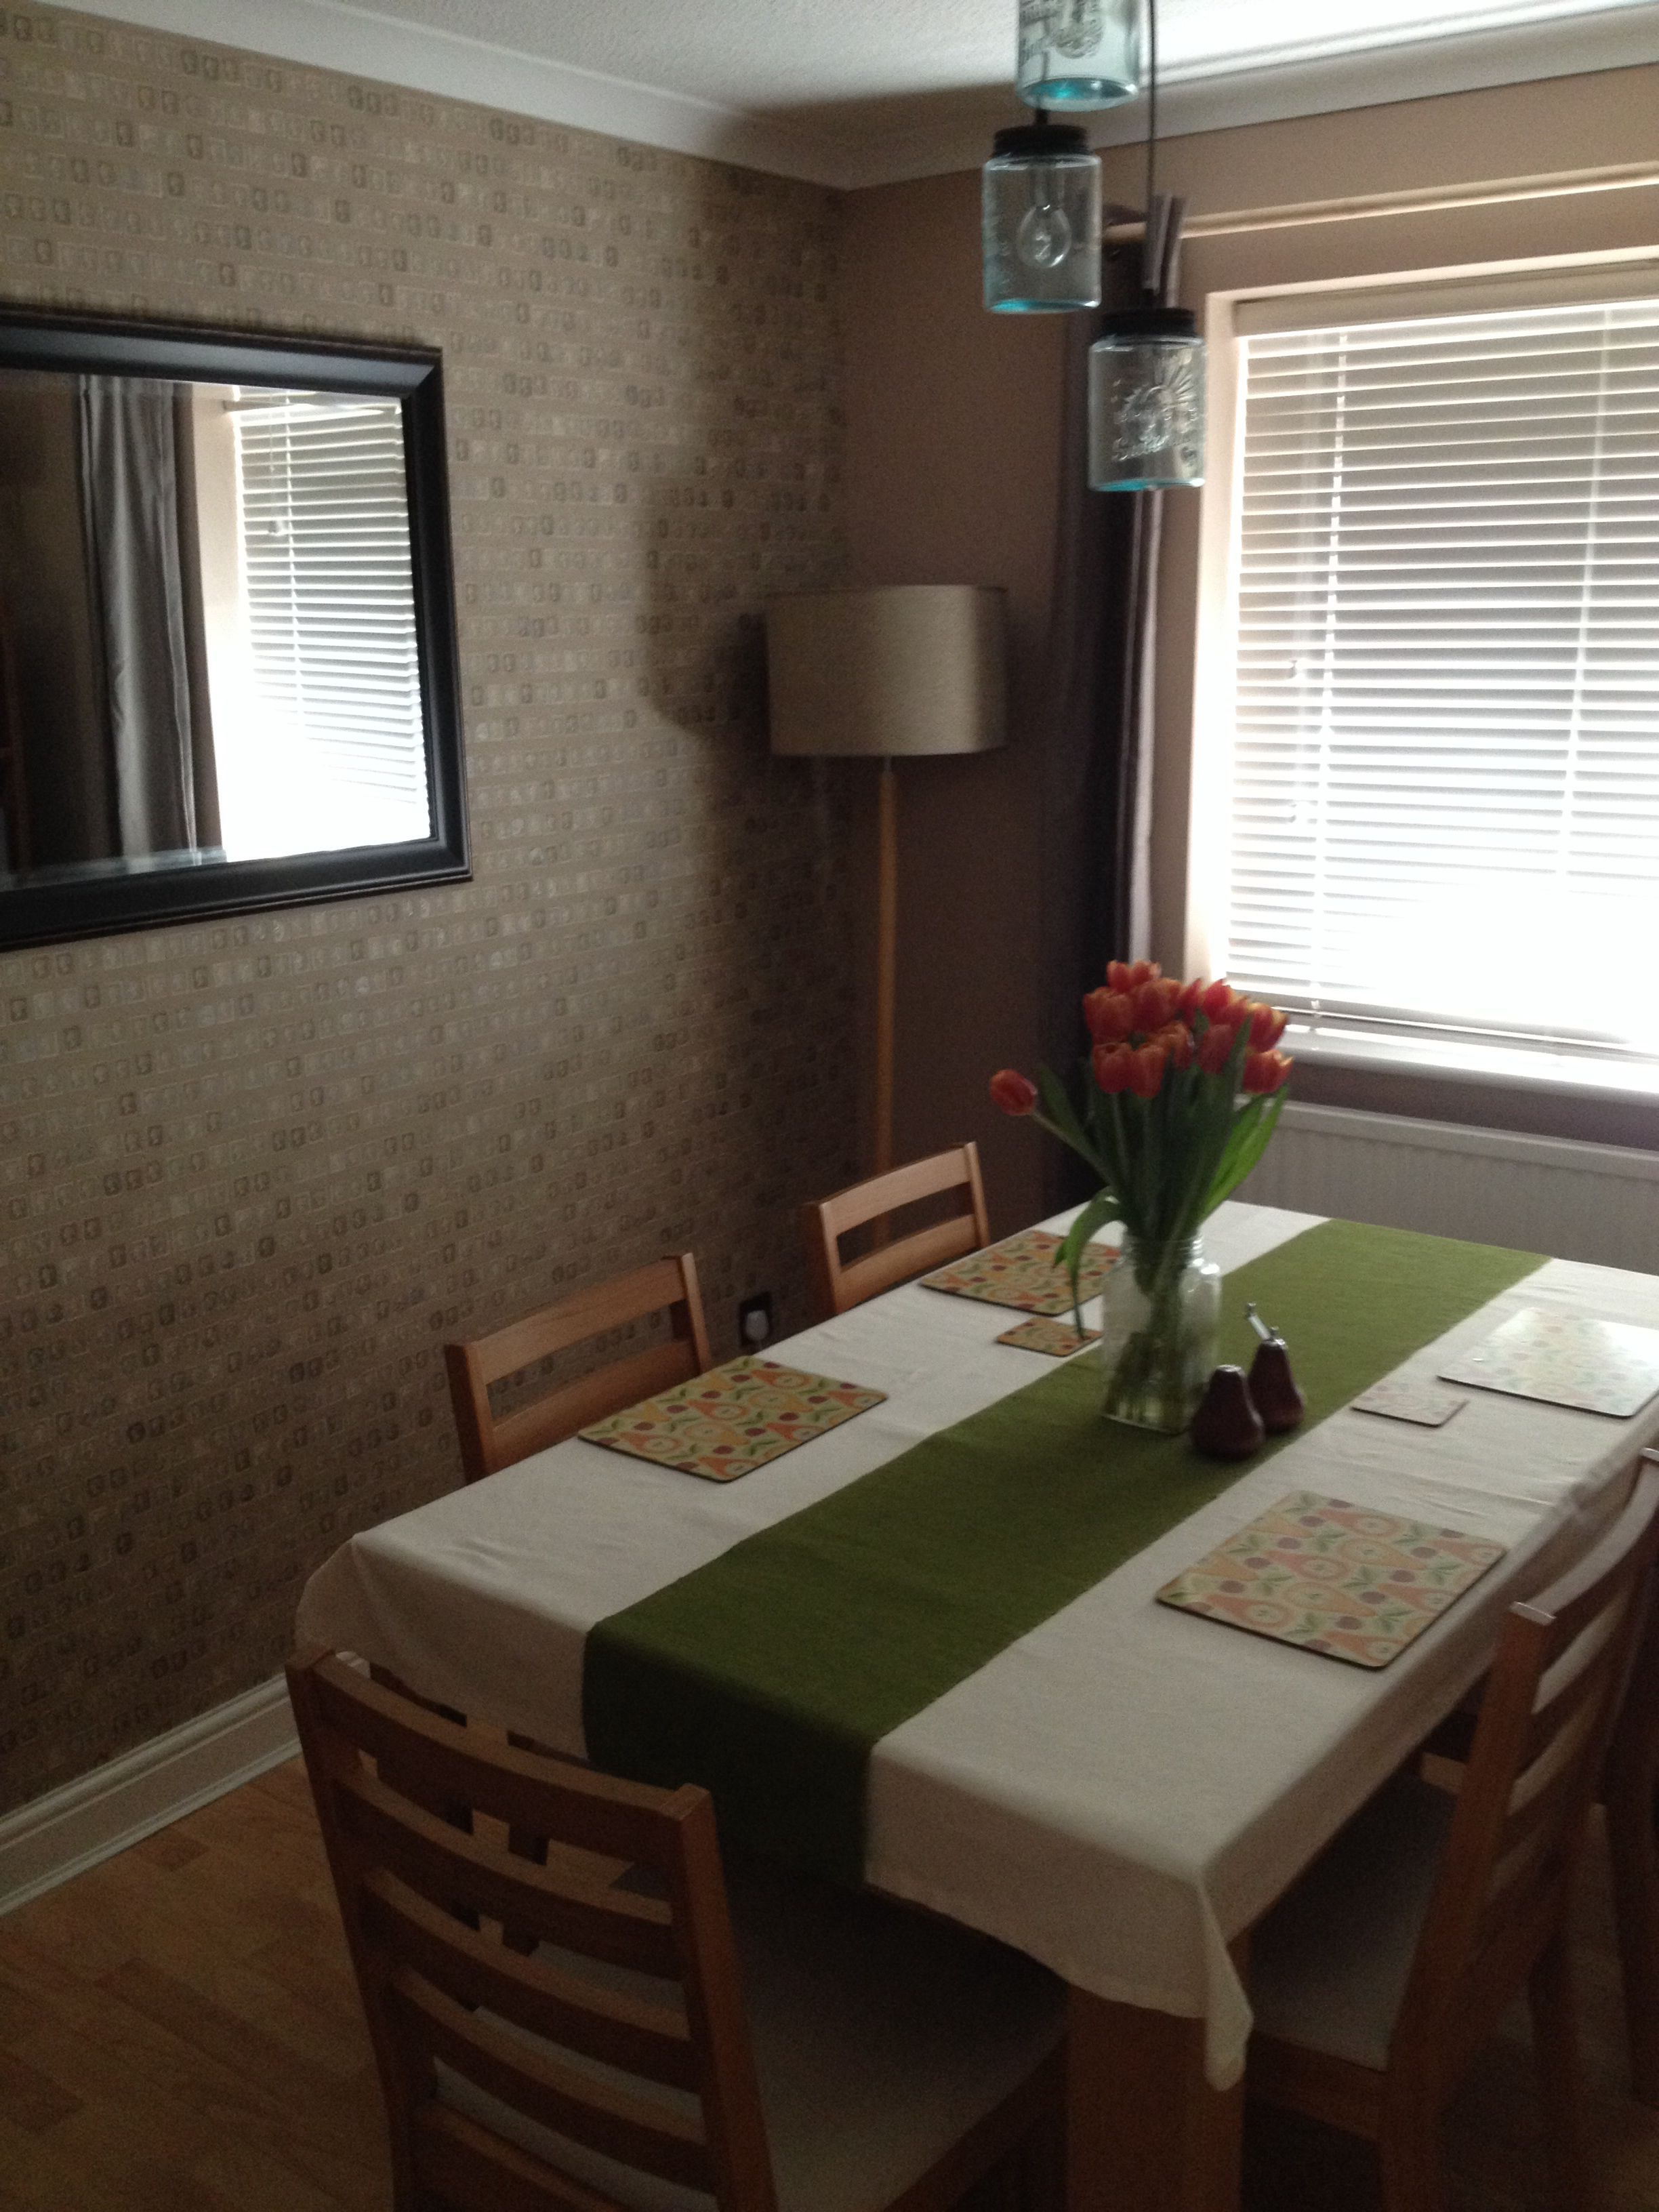 Dining Room Table And Chairs From Argos Jam Jar Lights Next